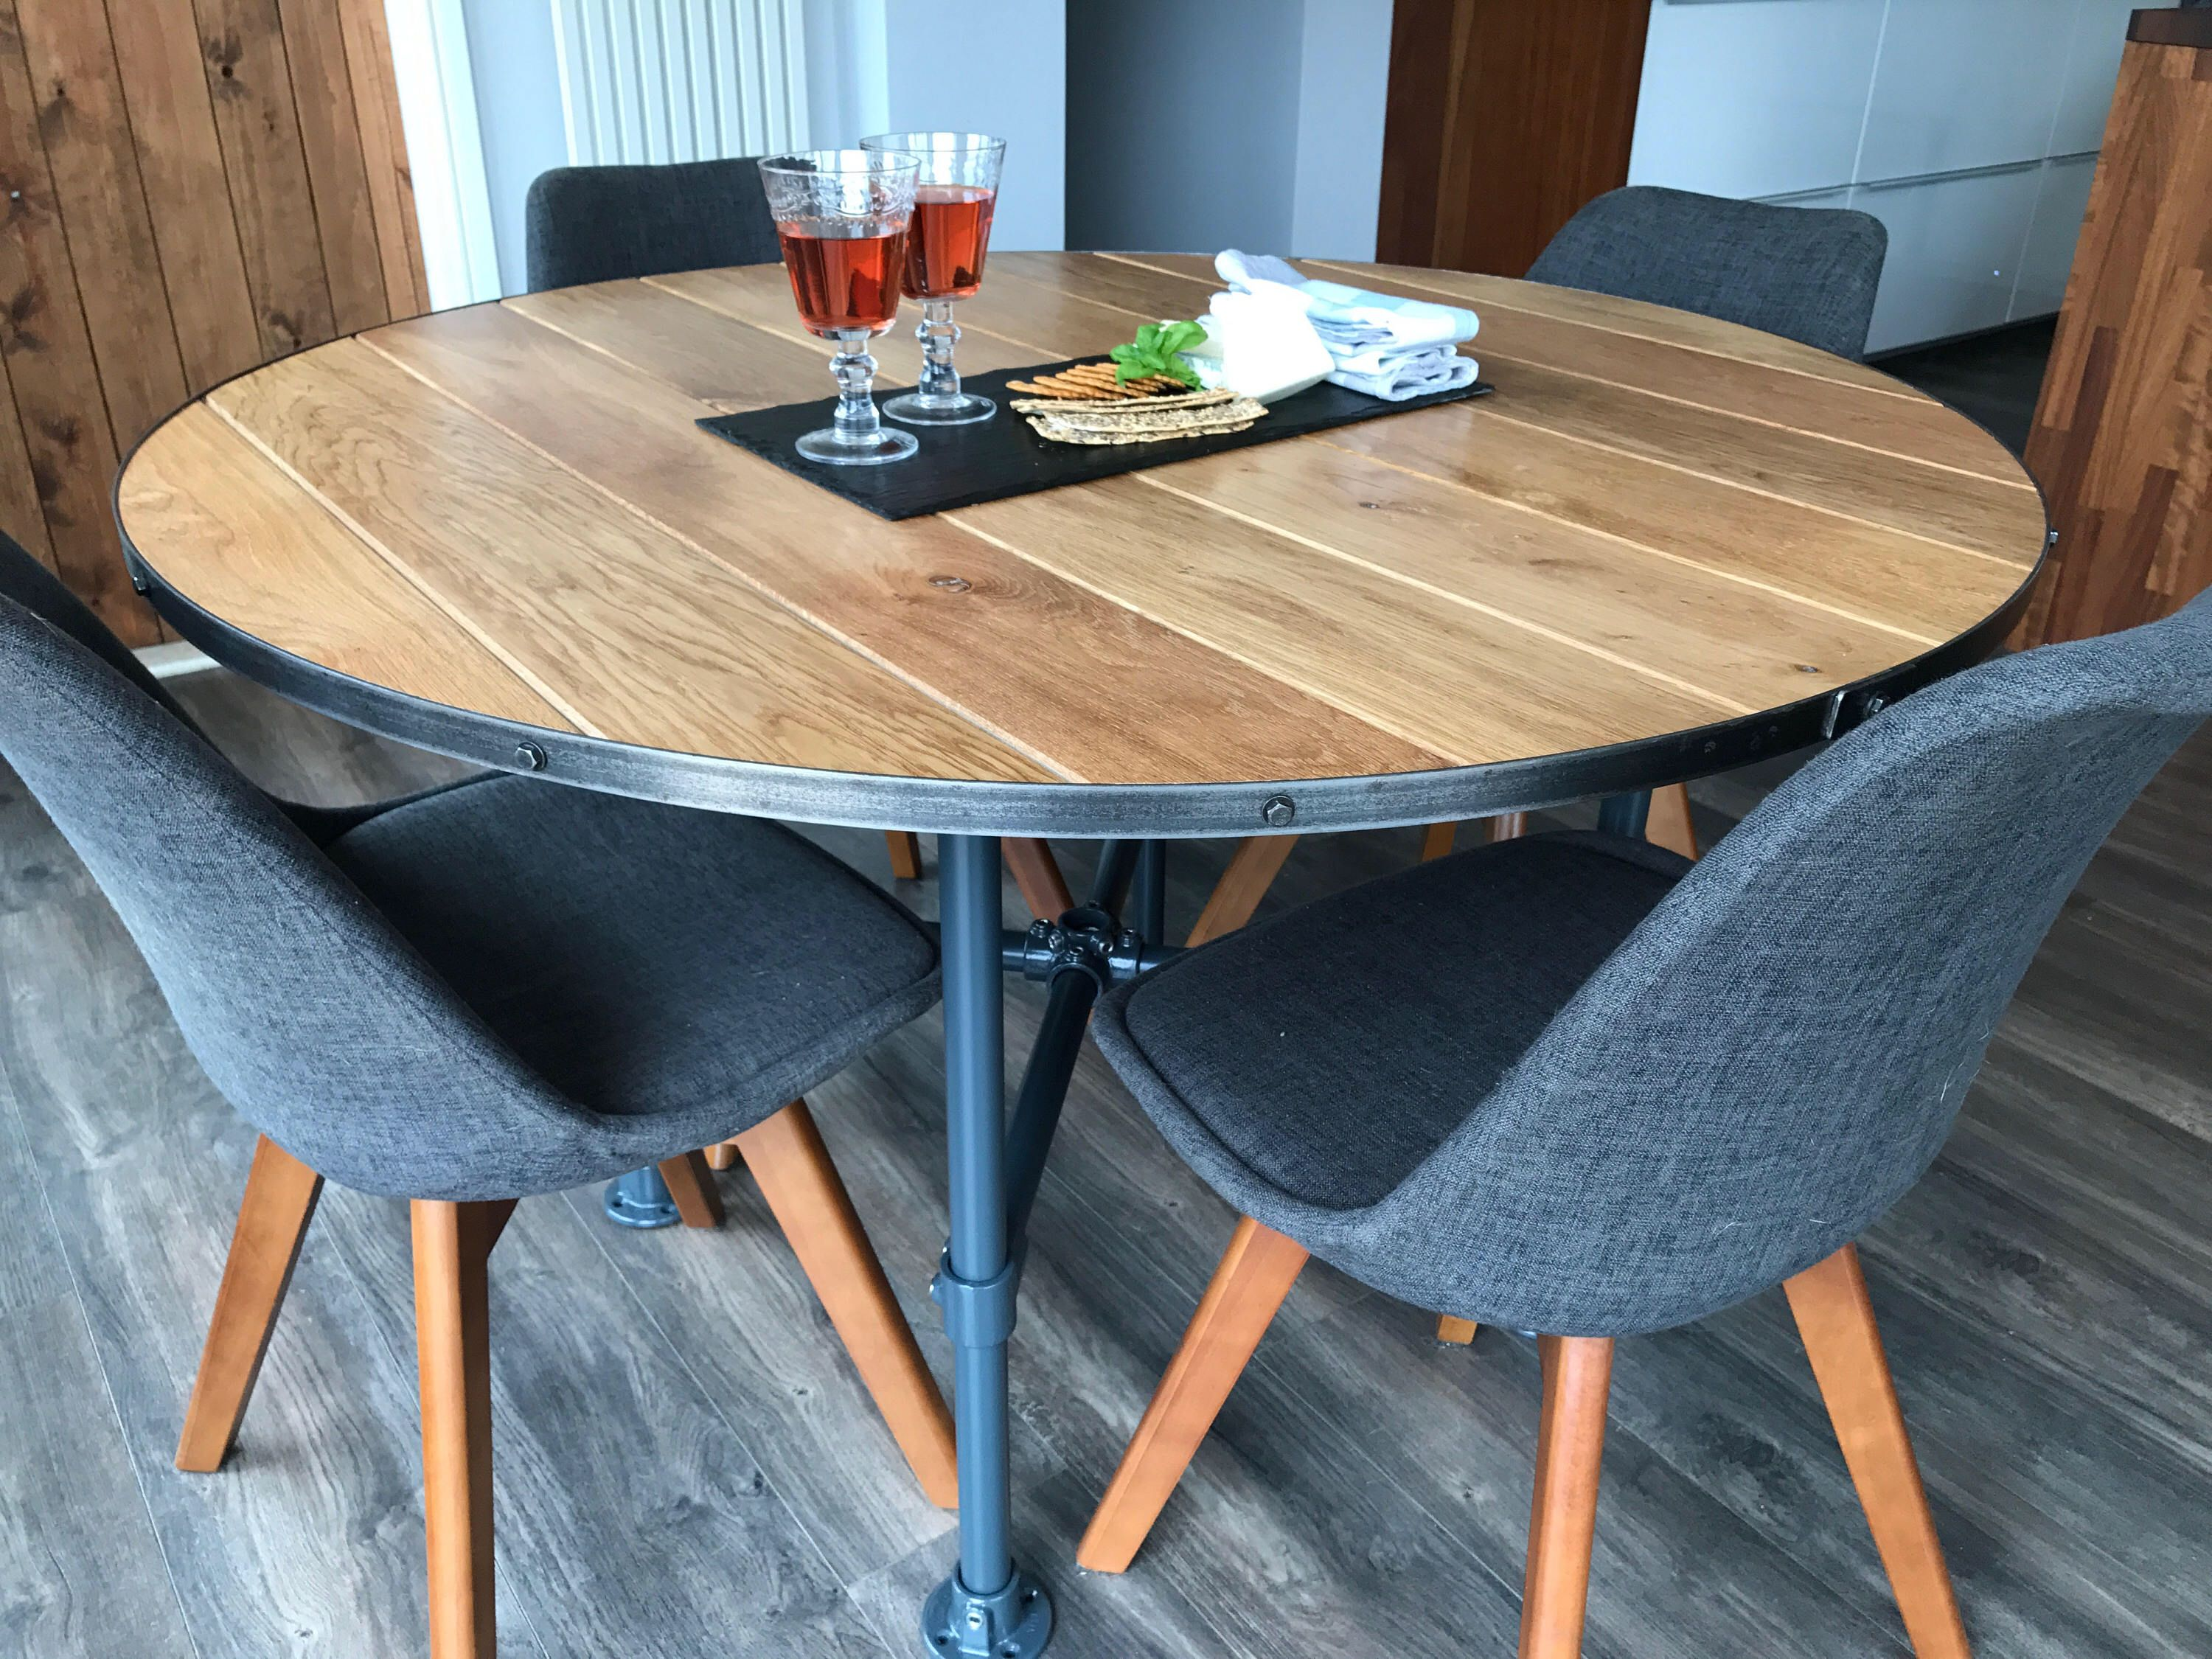 39+ Industrial round dining table set Best Seller